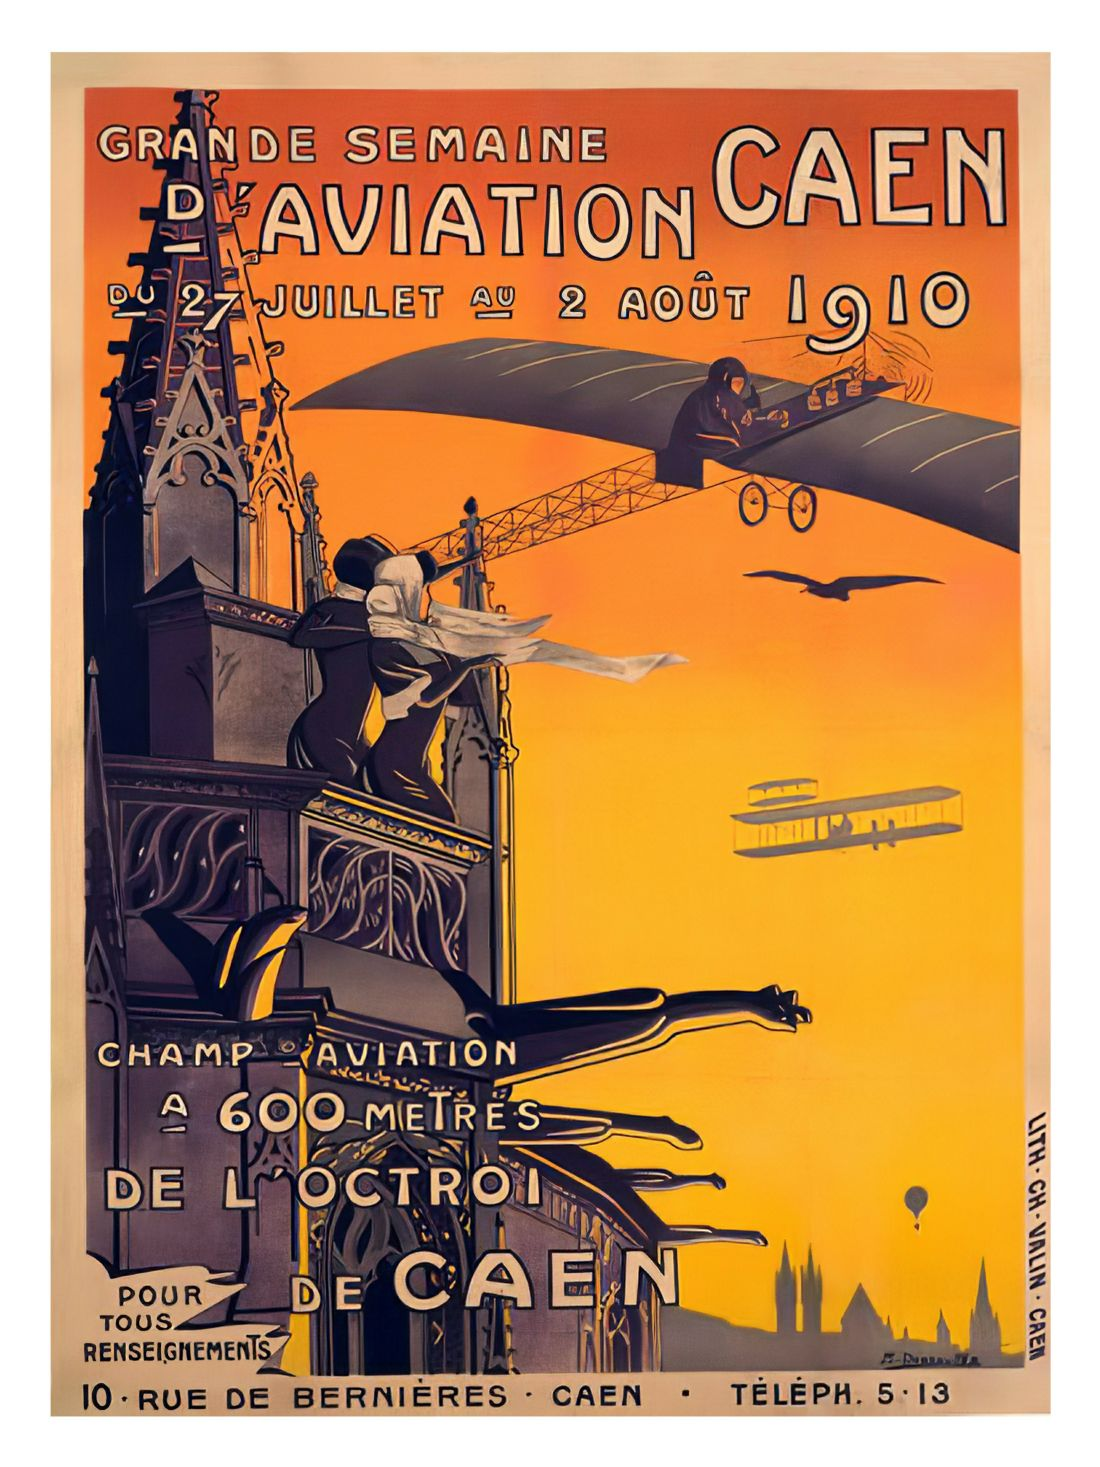 Chris Langley | Aviation Week in Caens, France 1910